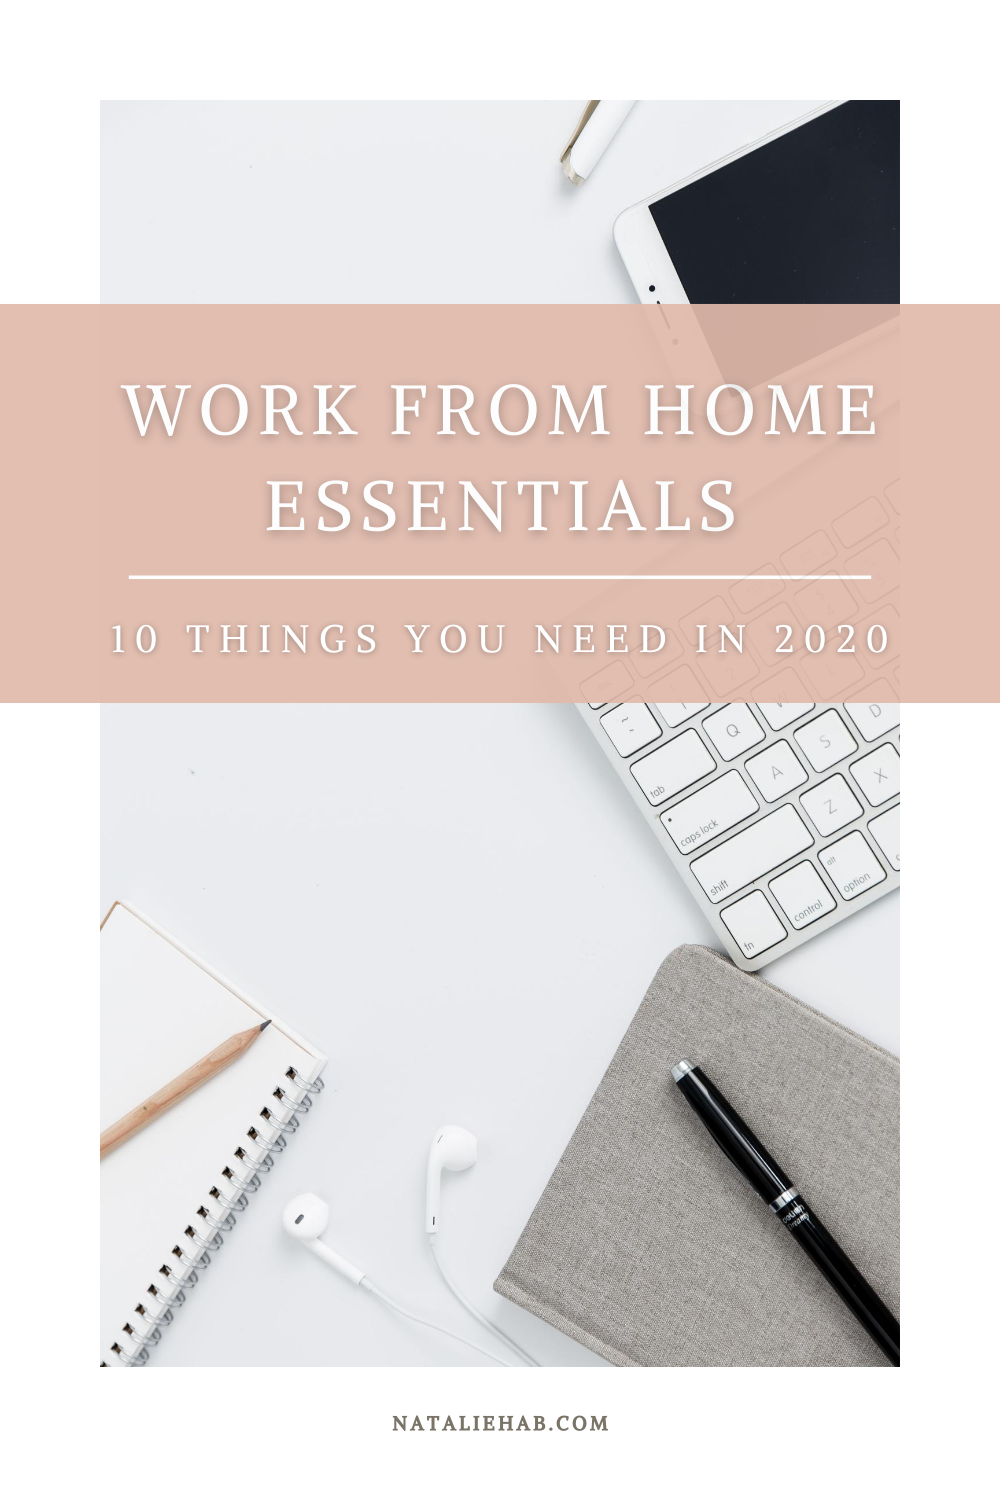 Home Office Essentials - NatalieHab.com: With remote work becoming the new norm, I've curated a list of my home office essentials. These 10 items are the key to success as a remote employee.